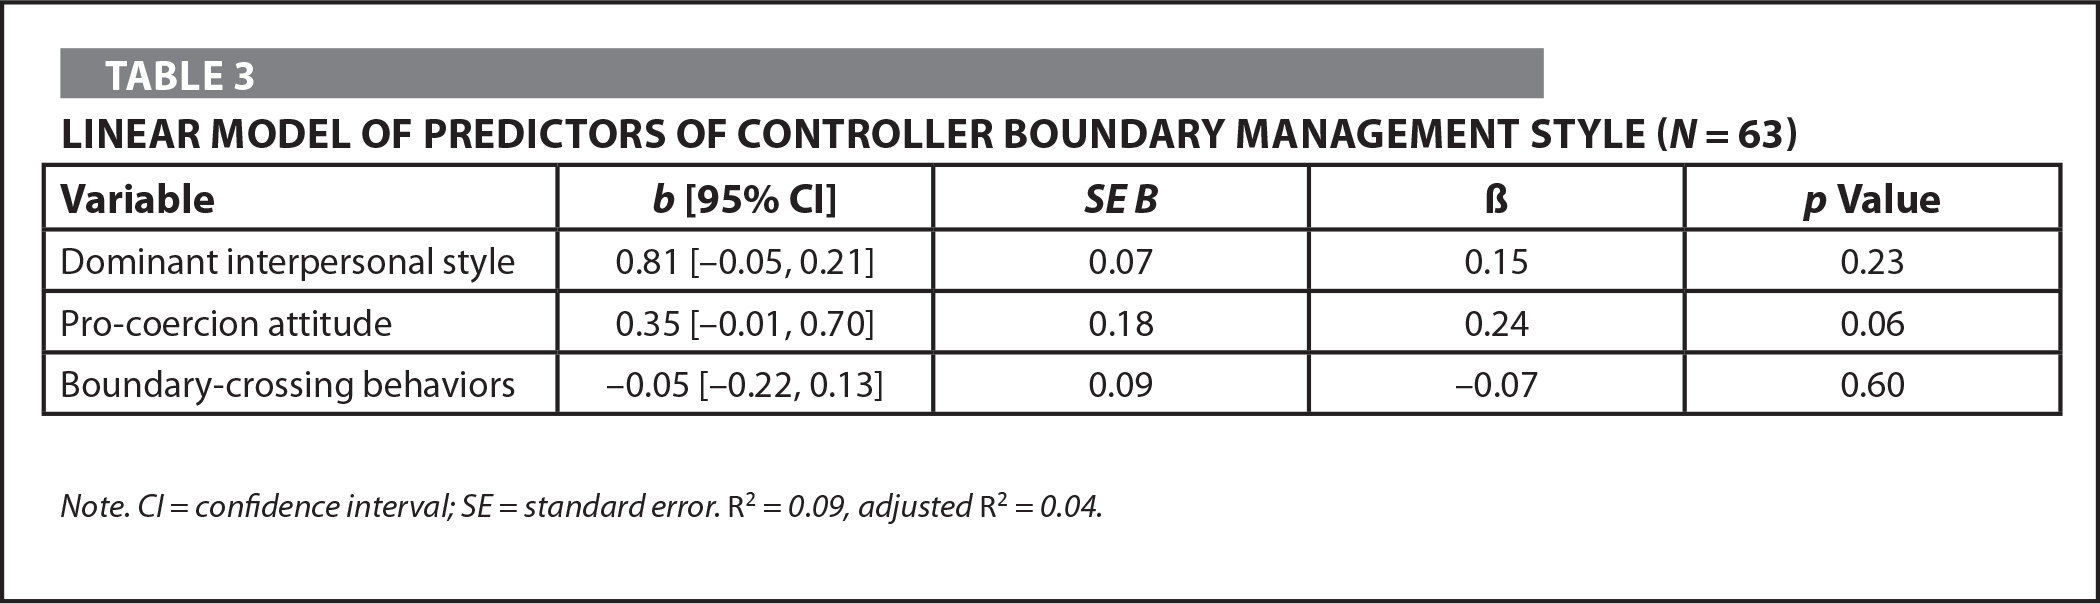 Linear Model of Predictors of Controller Boundary Management Style (N = 63)